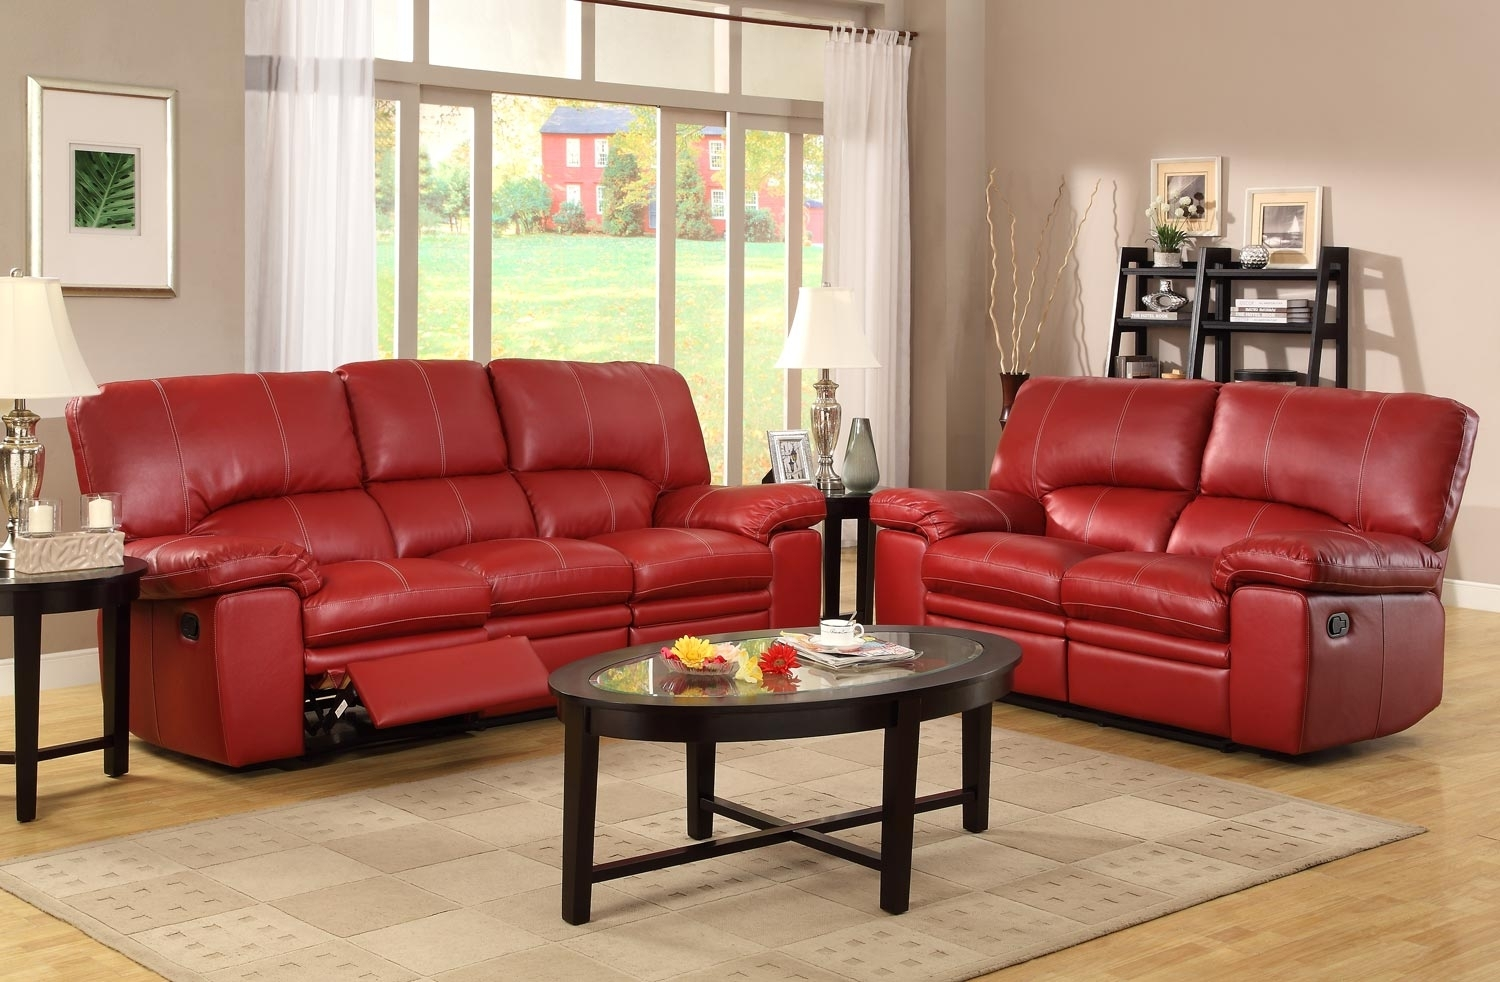 Great Red Leather Sofa Set 75 In Living Room Sofa Ideas With Red In Red Leather Couches For Living Room (Image 3 of 10)